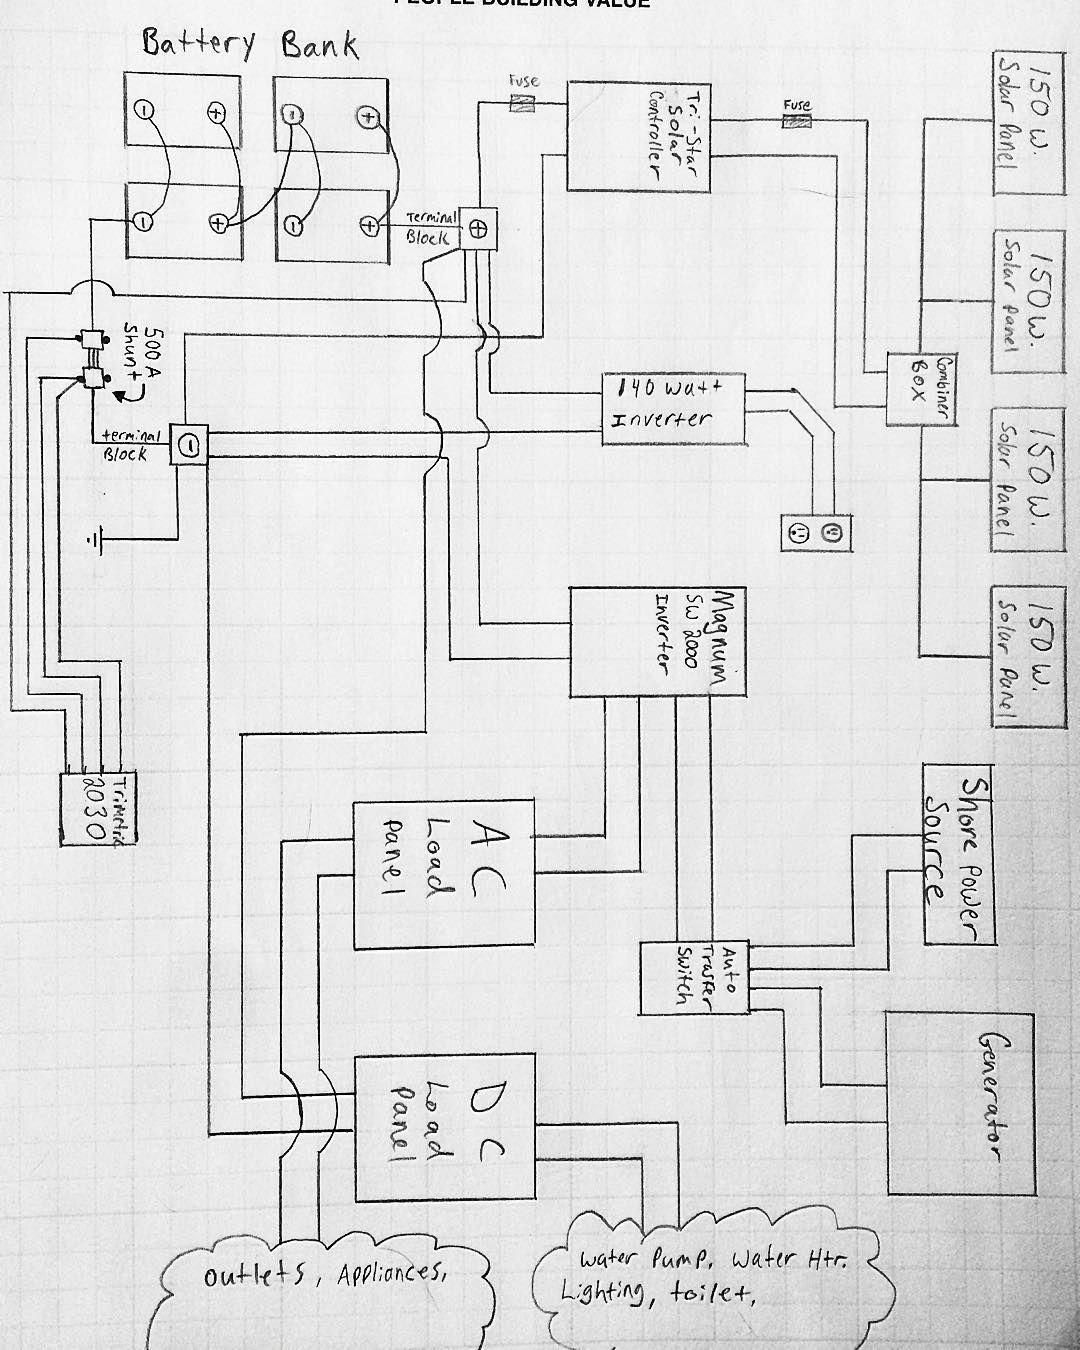 Not Enough Motivation To Do Real Bus Work So I Got Our Wiring Diagram Drawn Up Instead Midwestwanderers Offthegrid Electrical Layout Skoolie School Bus Rv